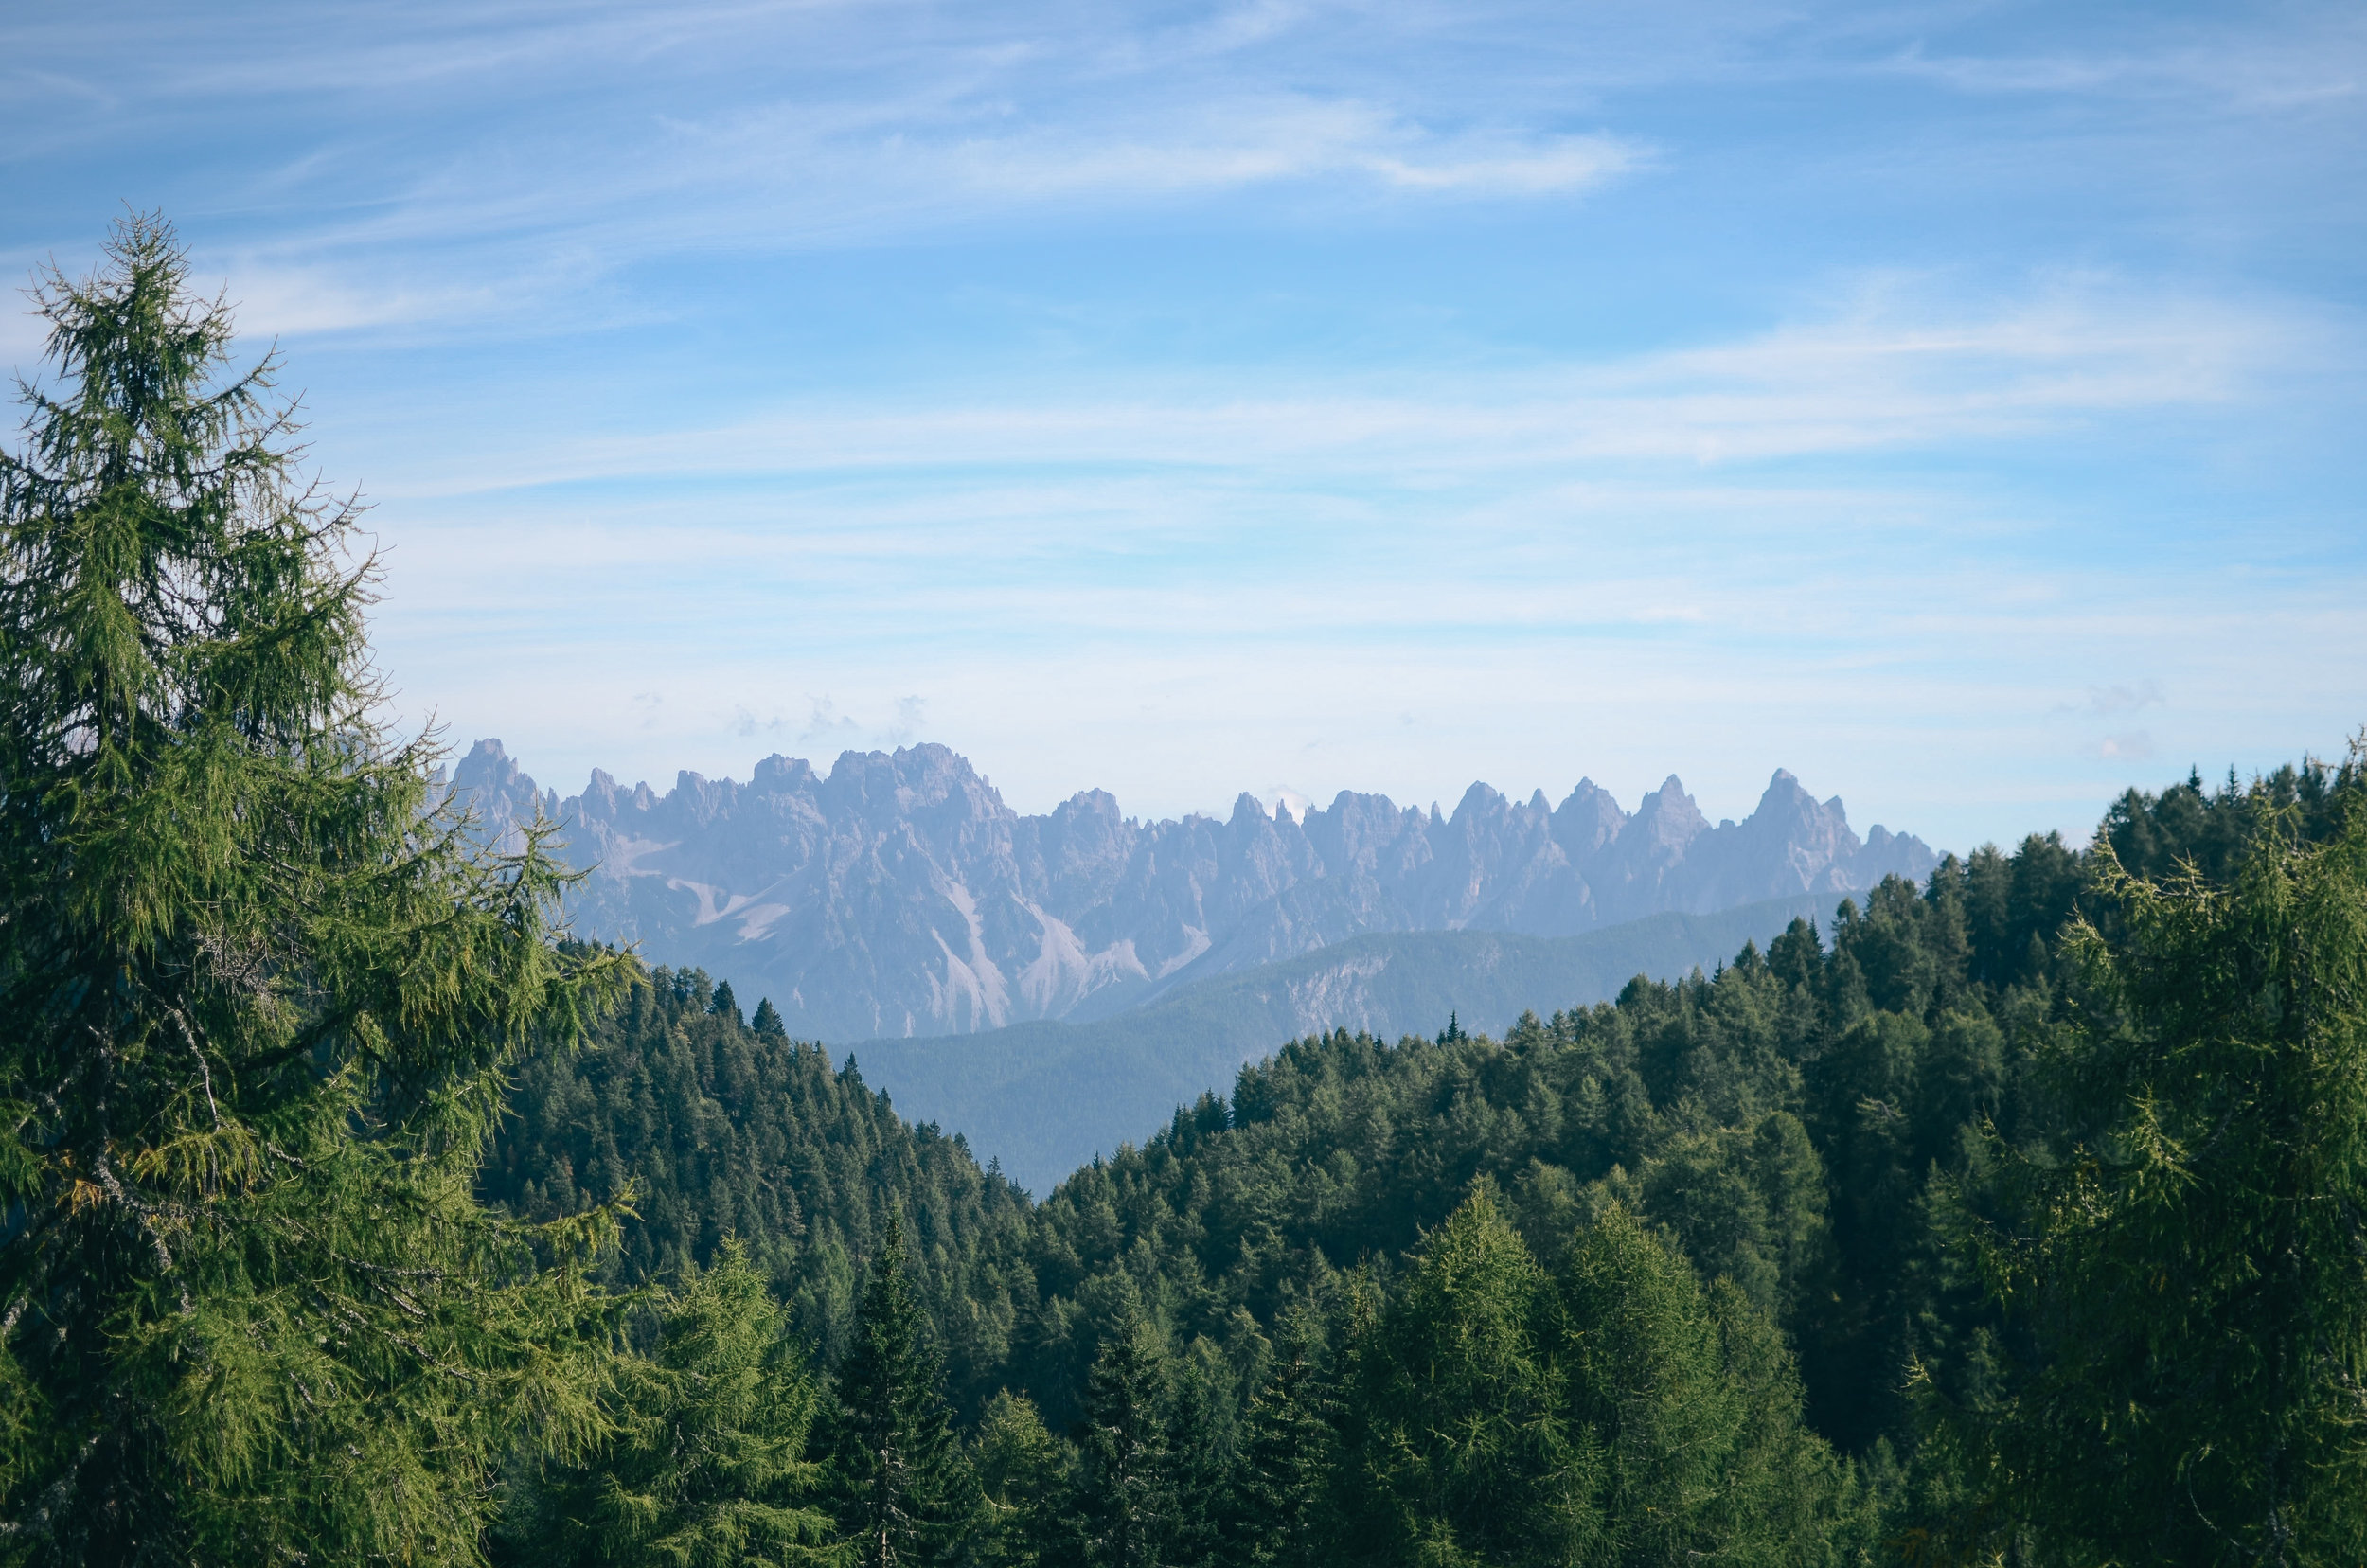 dolomites-why-the-italian-alps-should-be-your-next-mountain-adventure- travel-blog-2.jpg